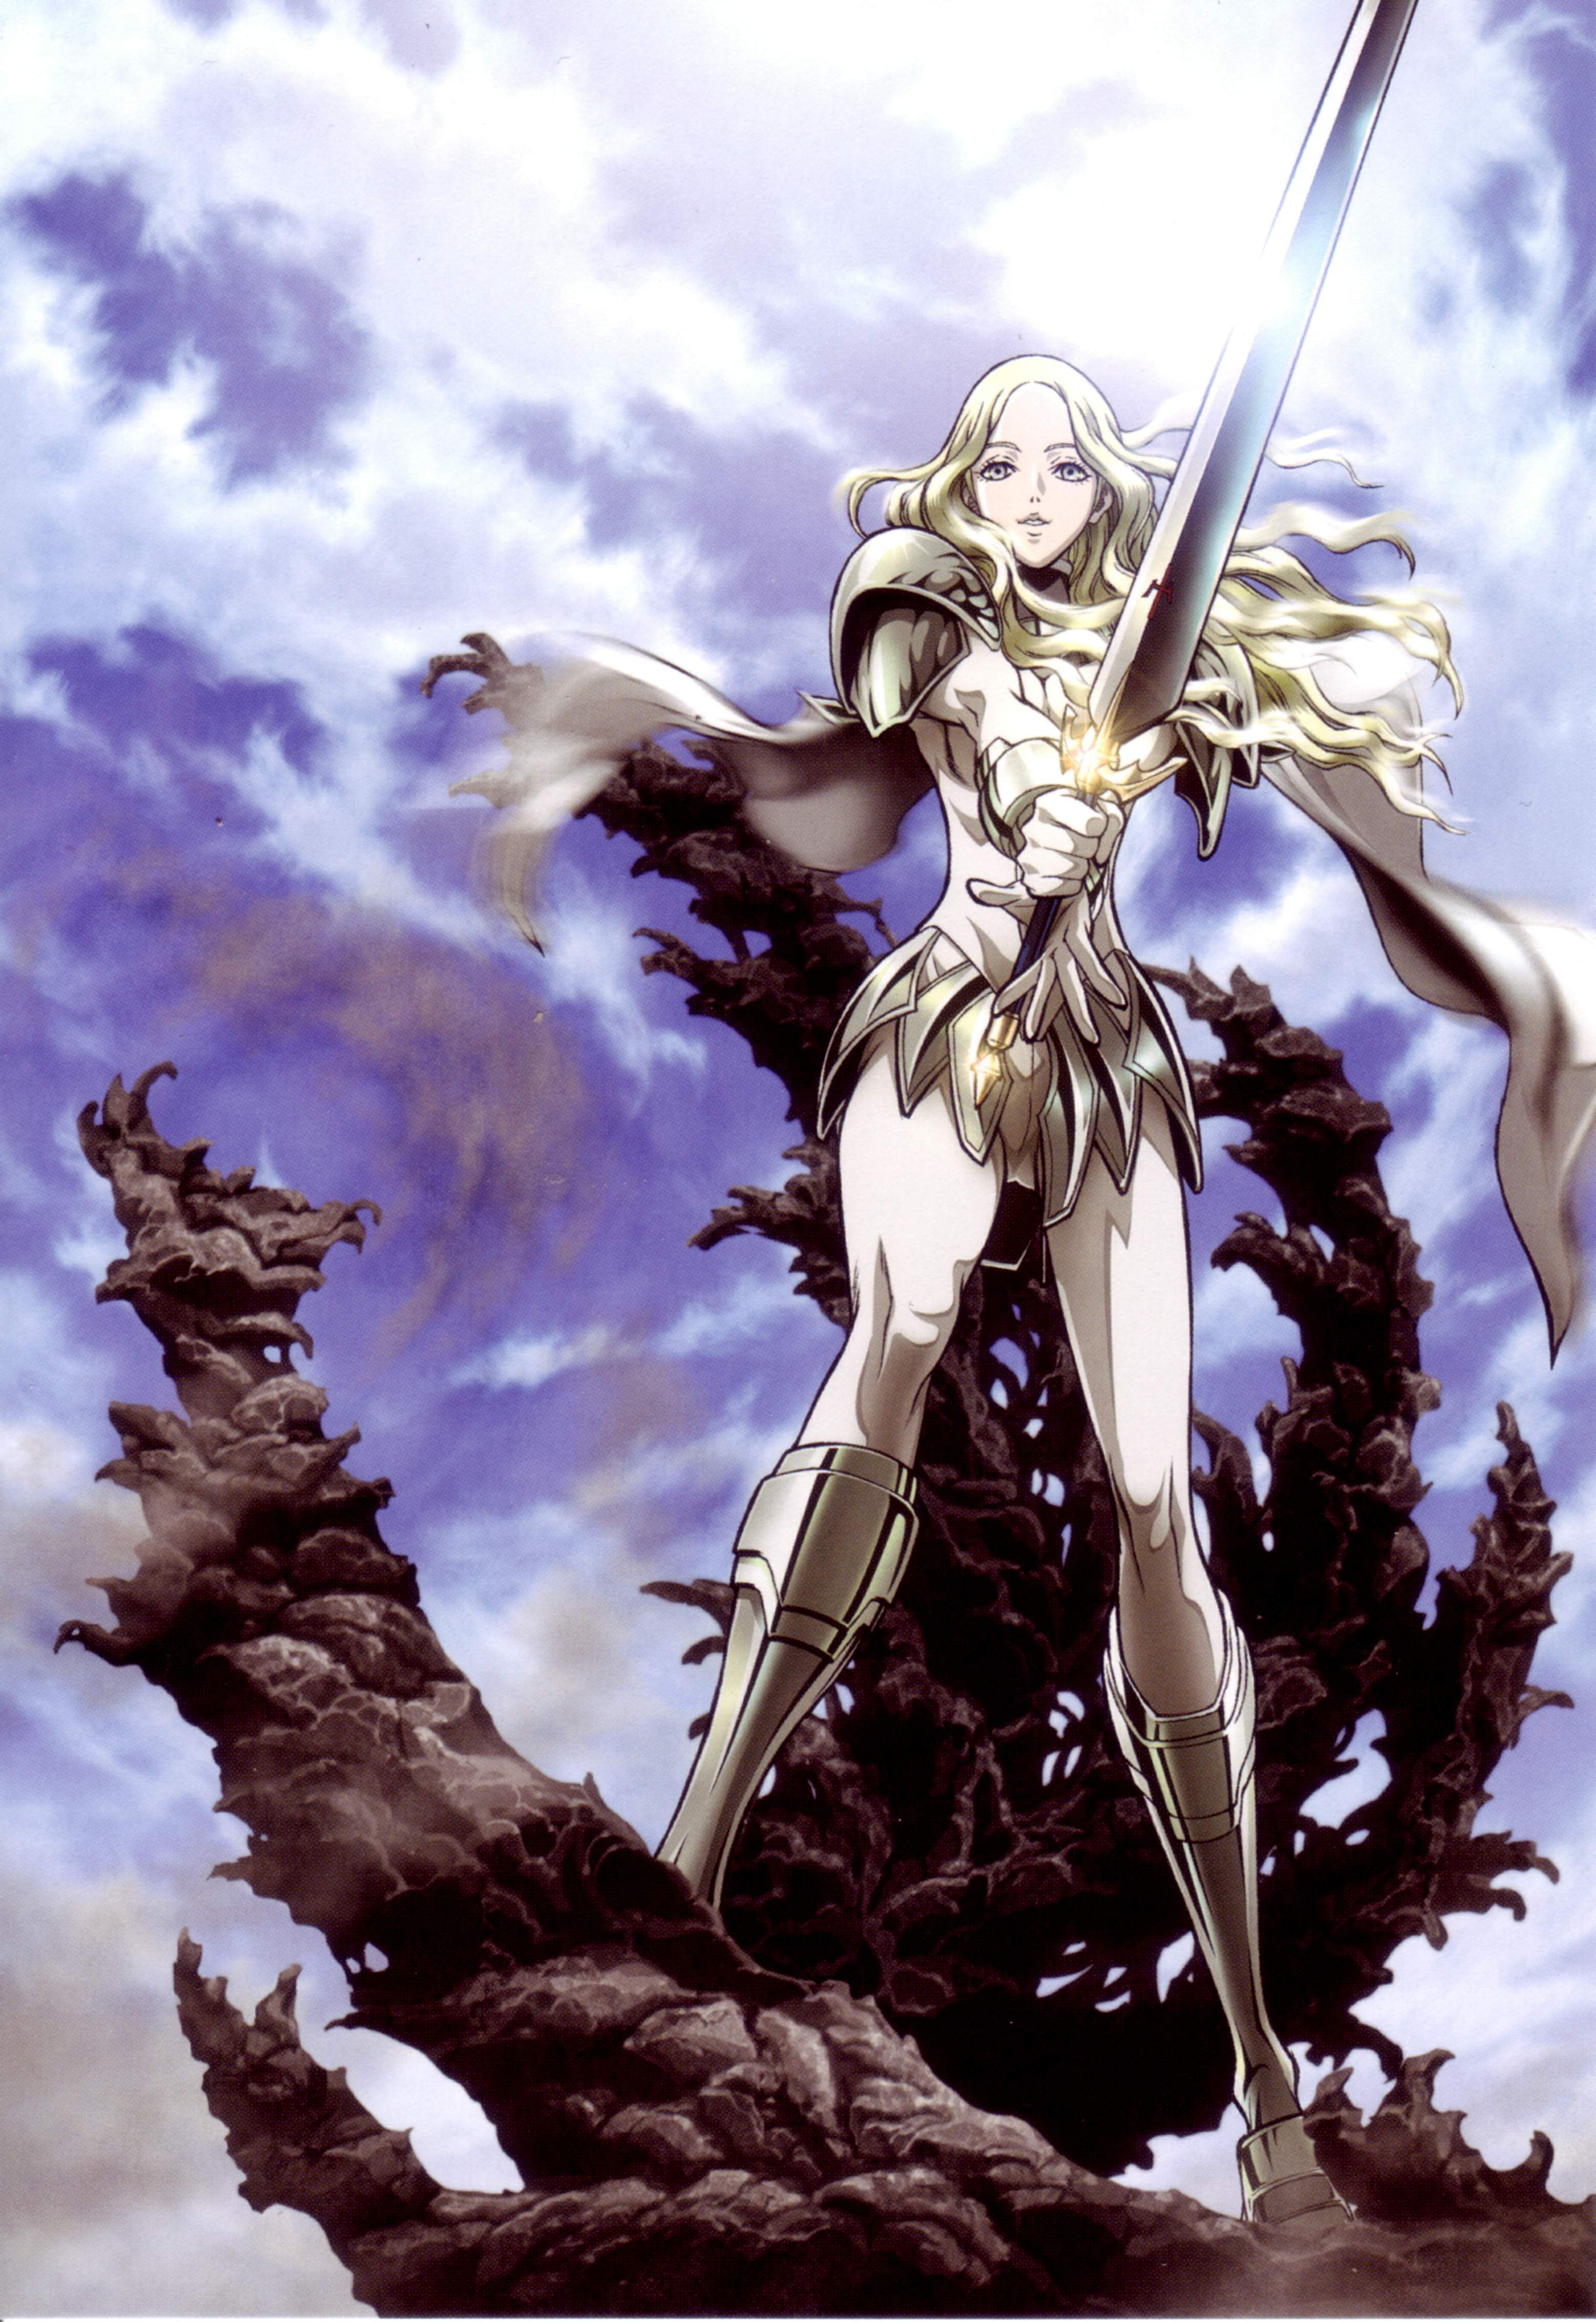 Top 8 Super Powerful Female Anime Characters